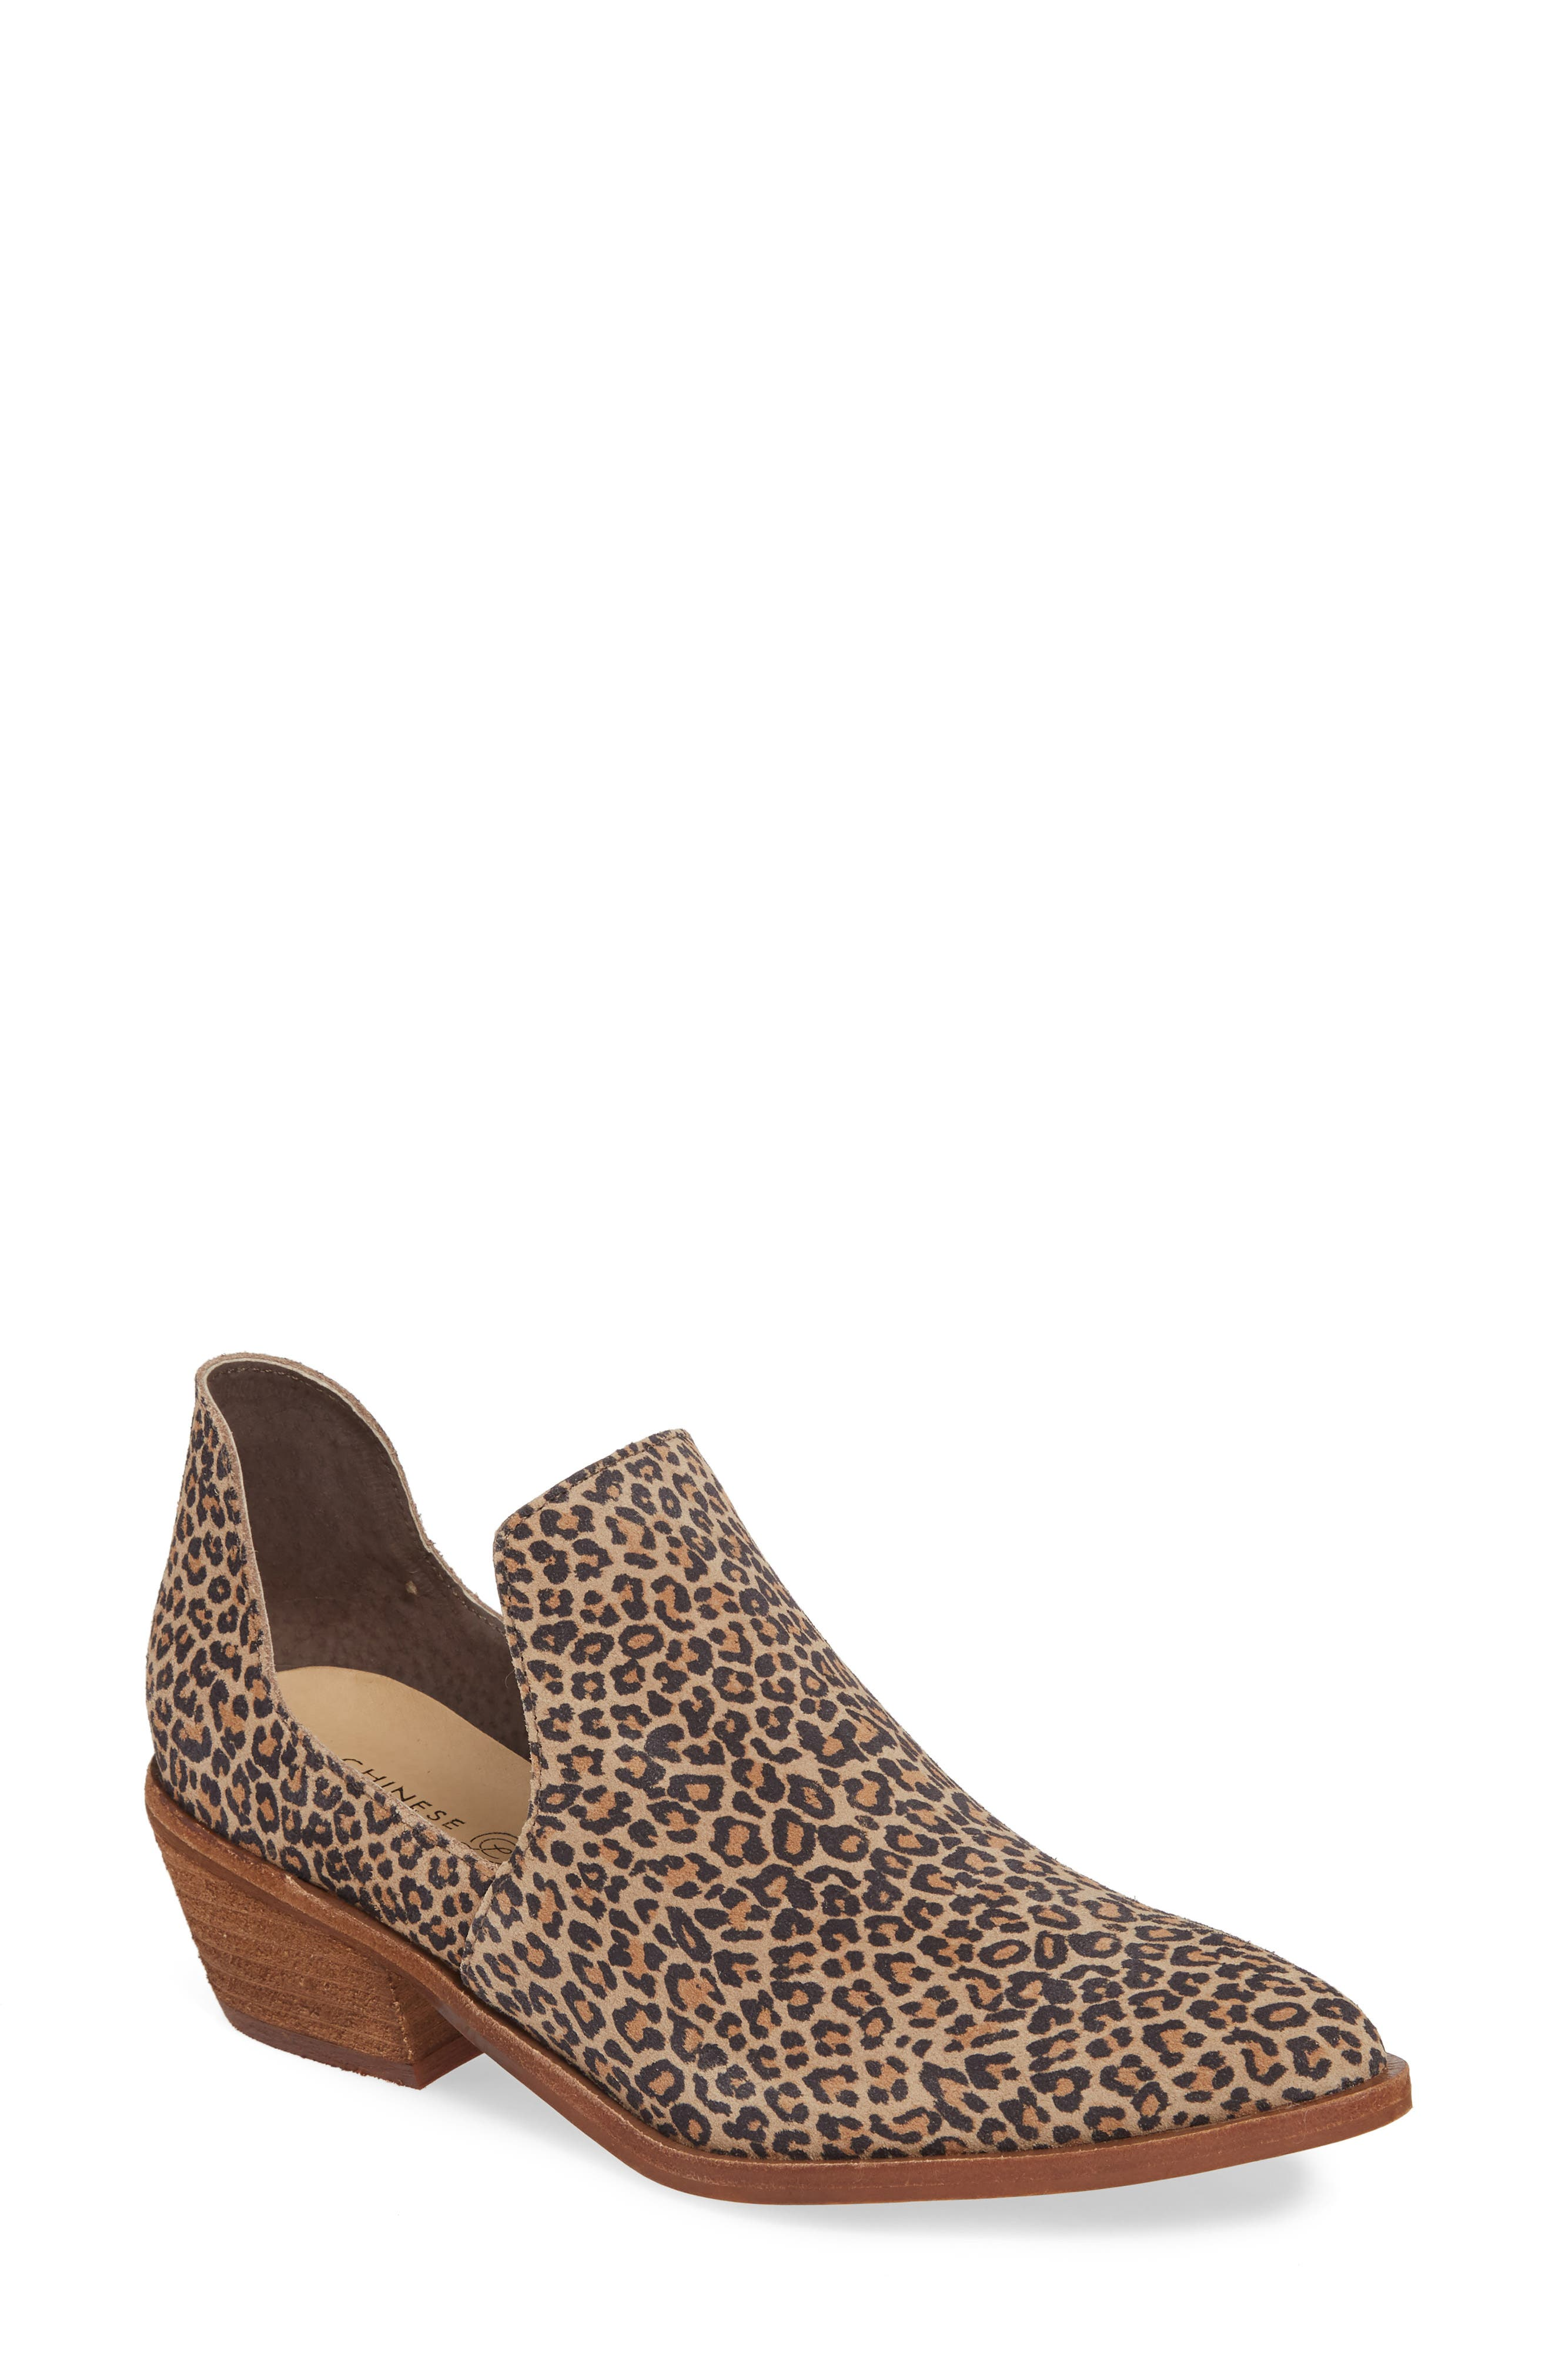 Chinese Laundry Focus Open Sided Bootie, Brown